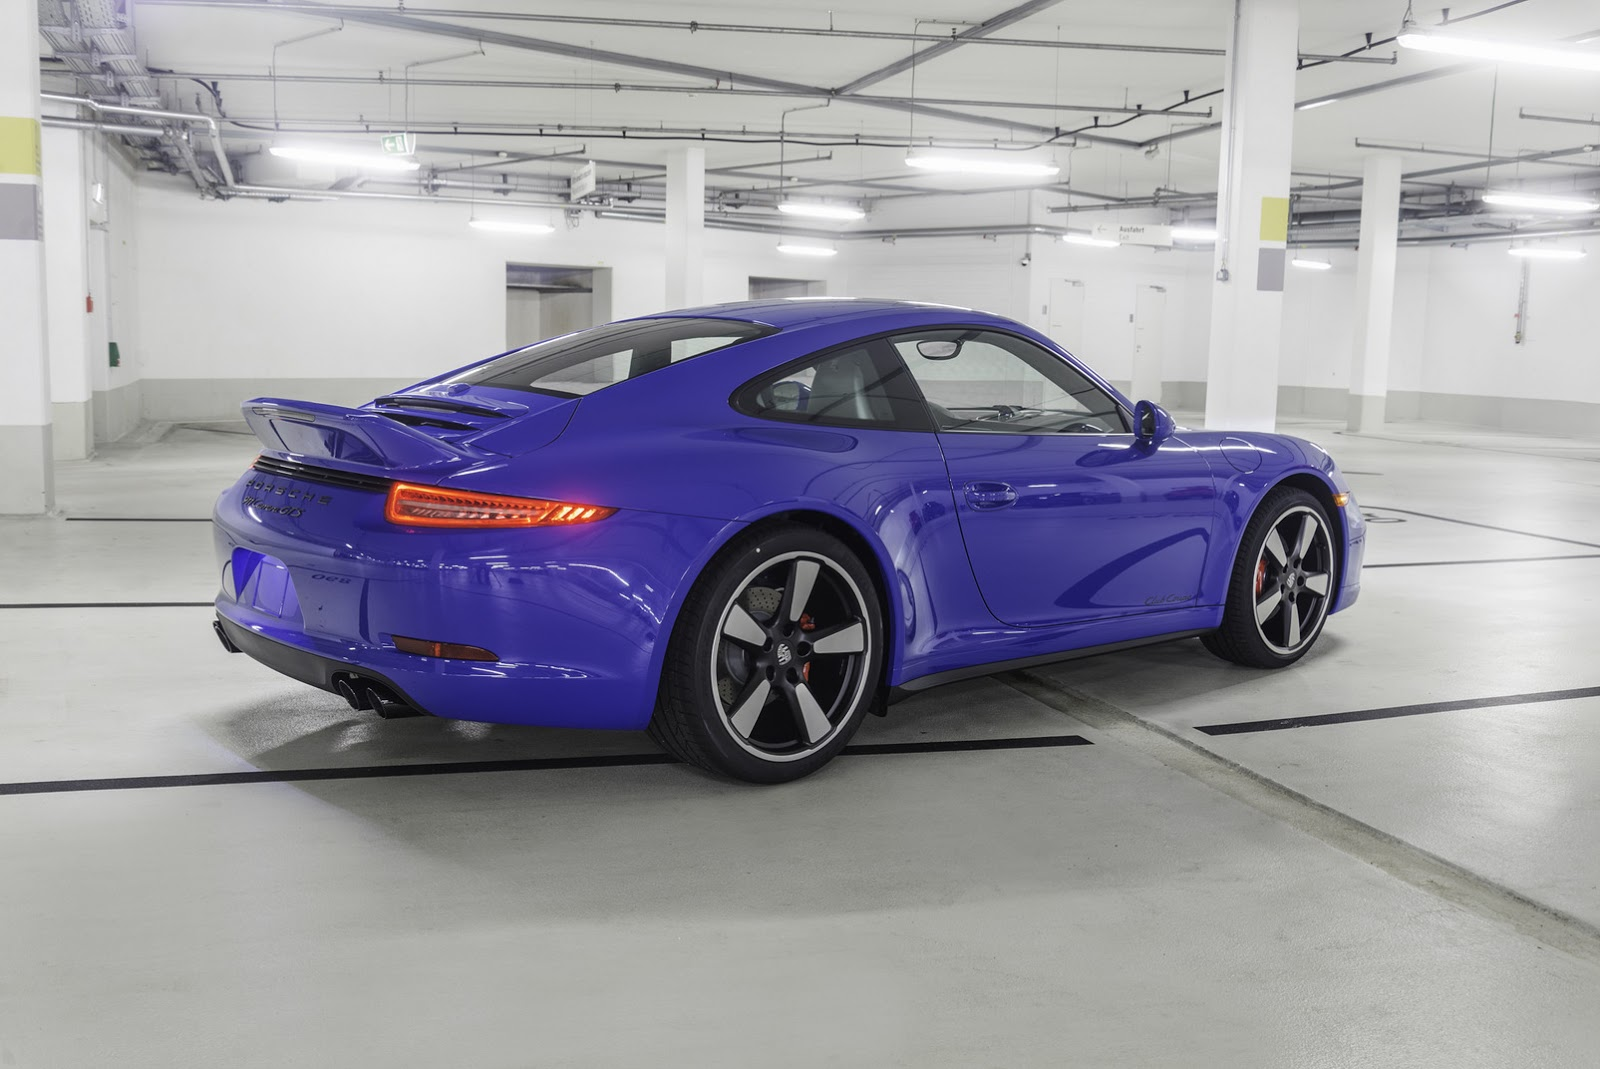 New Limited Edition Porsche 911 Gts Club Coupe Only For U